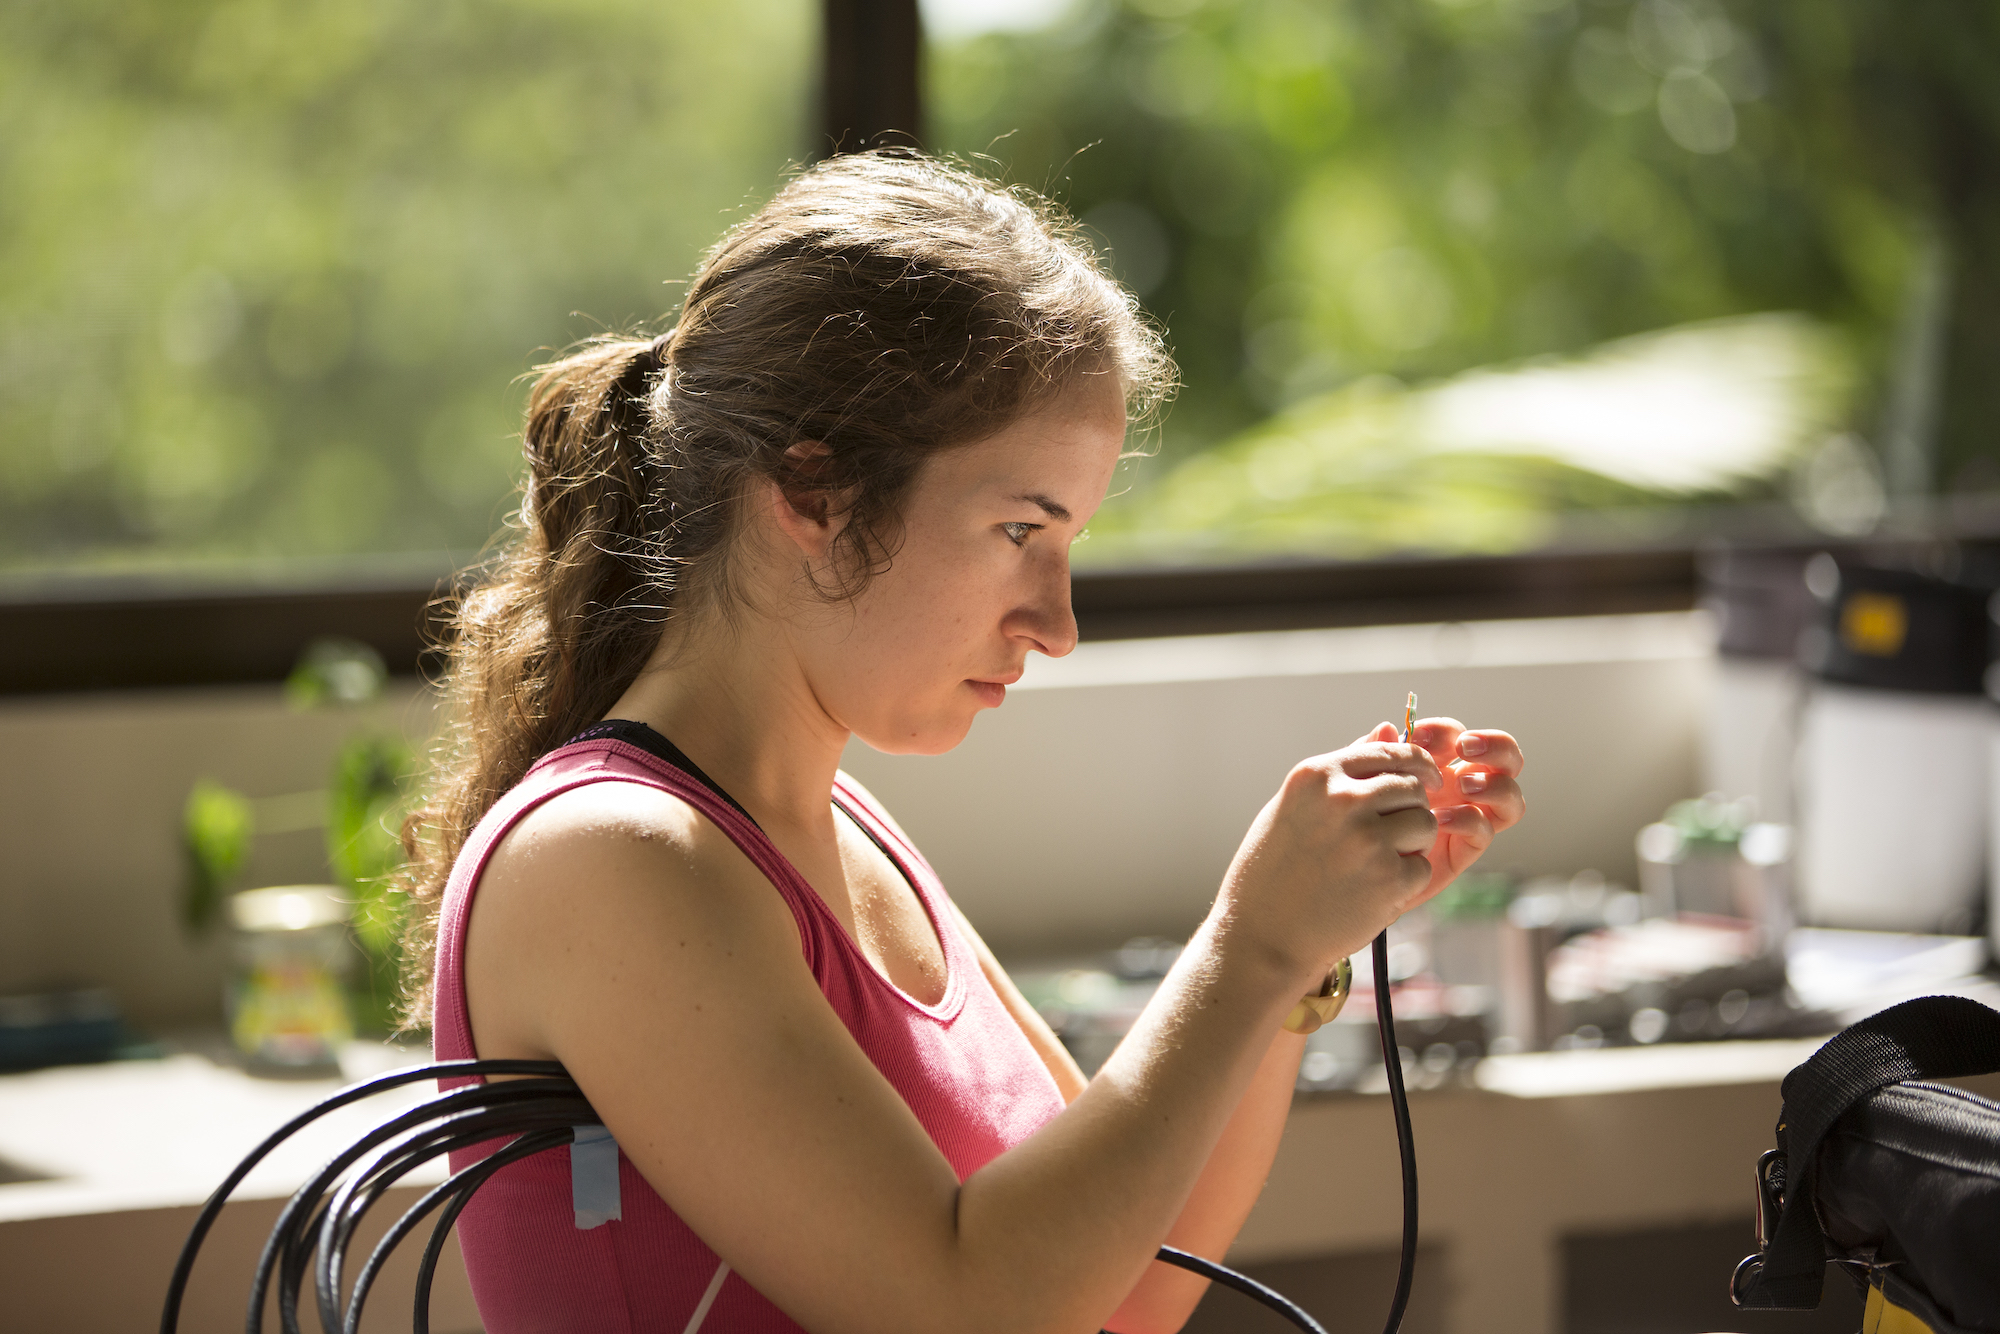 Student examining equipment wires